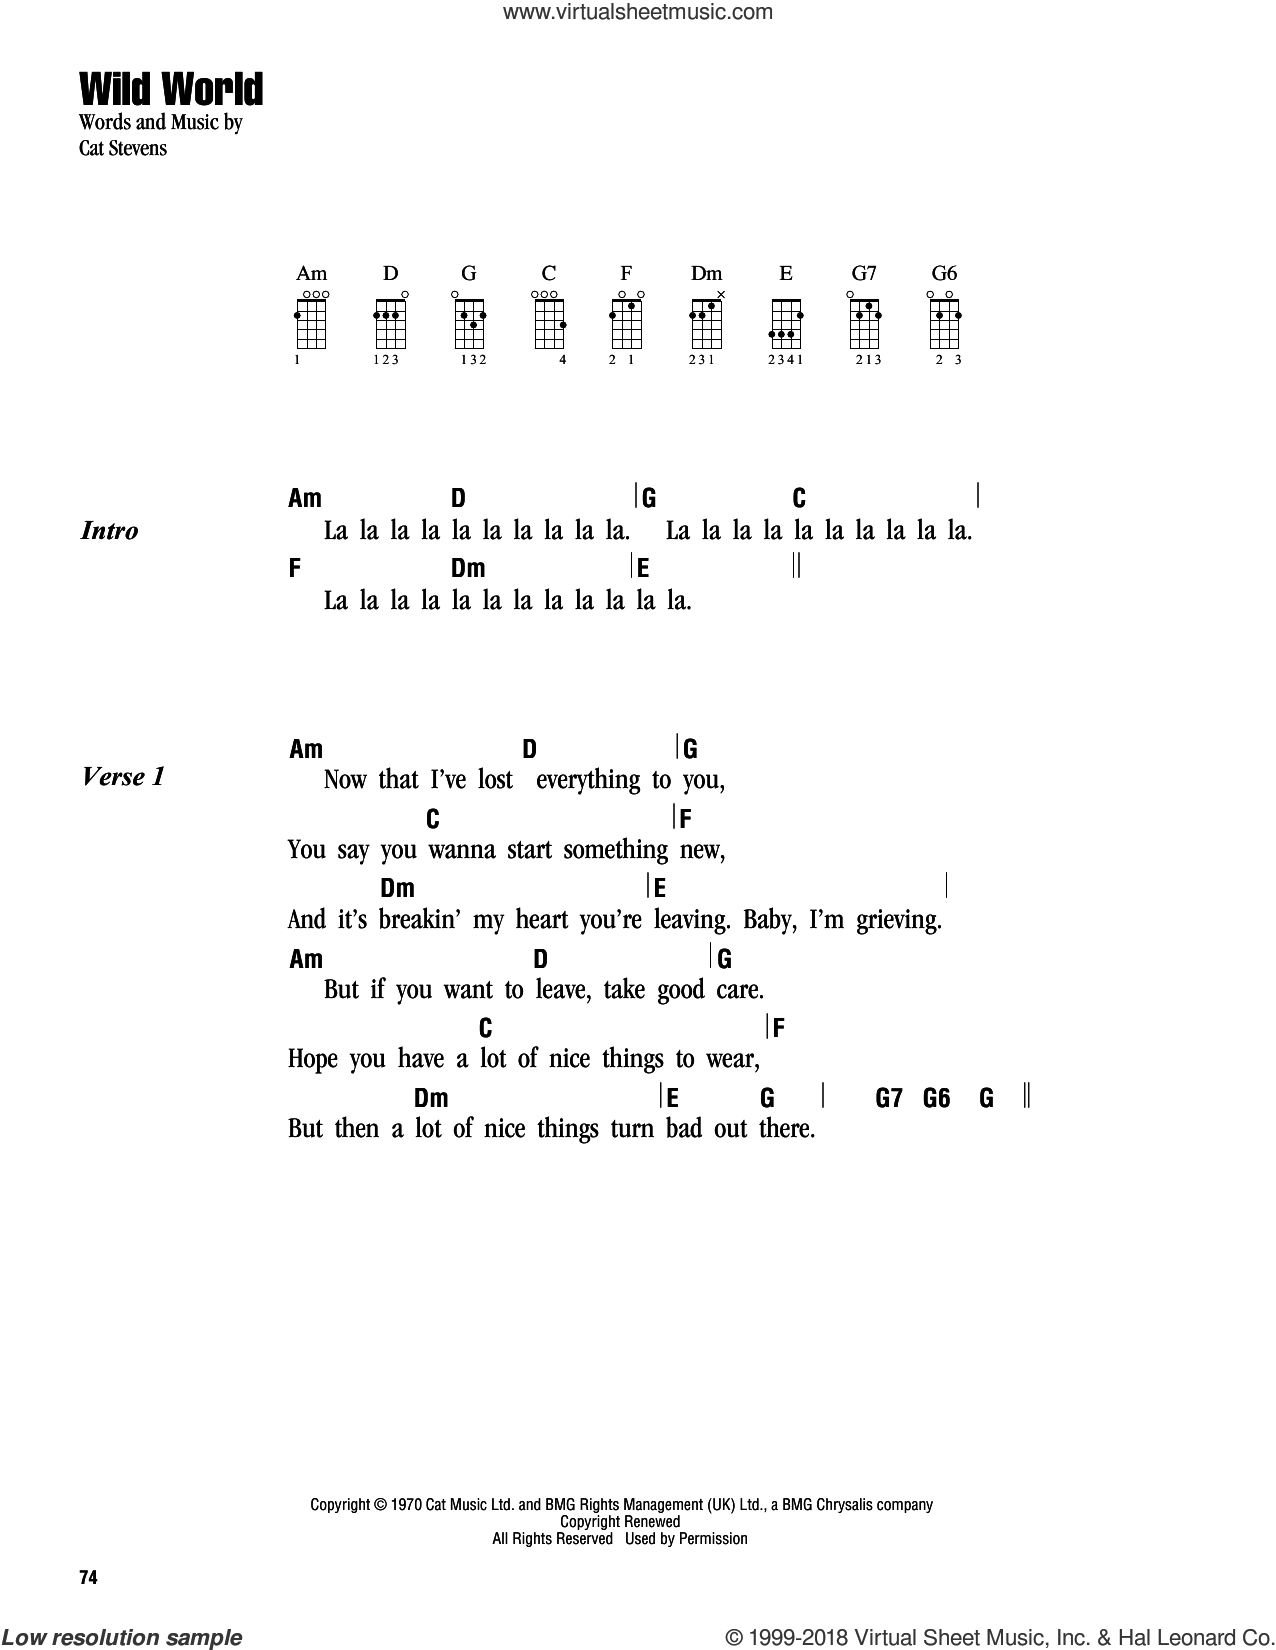 Wild World sheet music for ukulele (chords) by Cat Stevens, Maxi Priest and Yusuf Islam, intermediate skill level